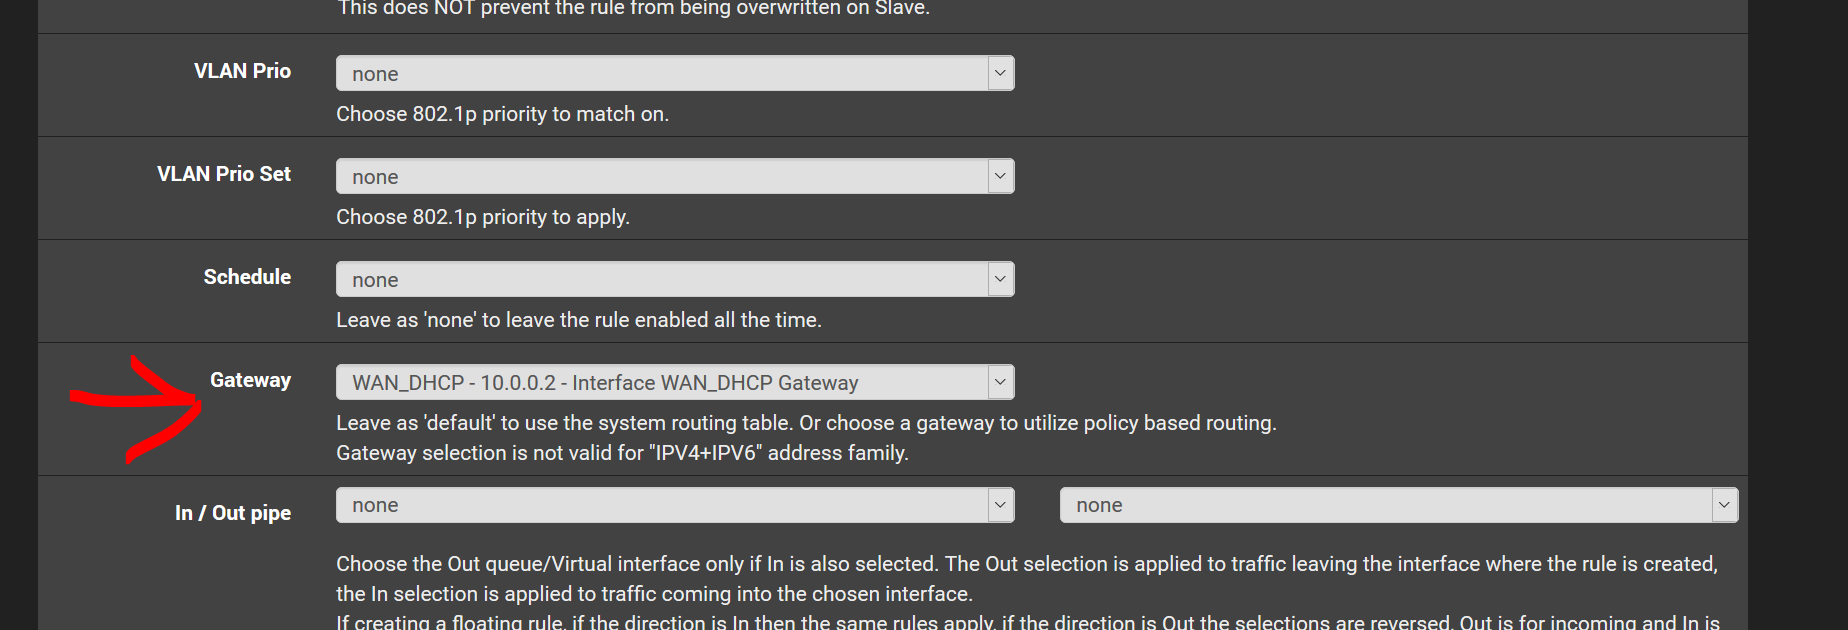 Pfsense, bypassing VPN on specific devices for Netflix